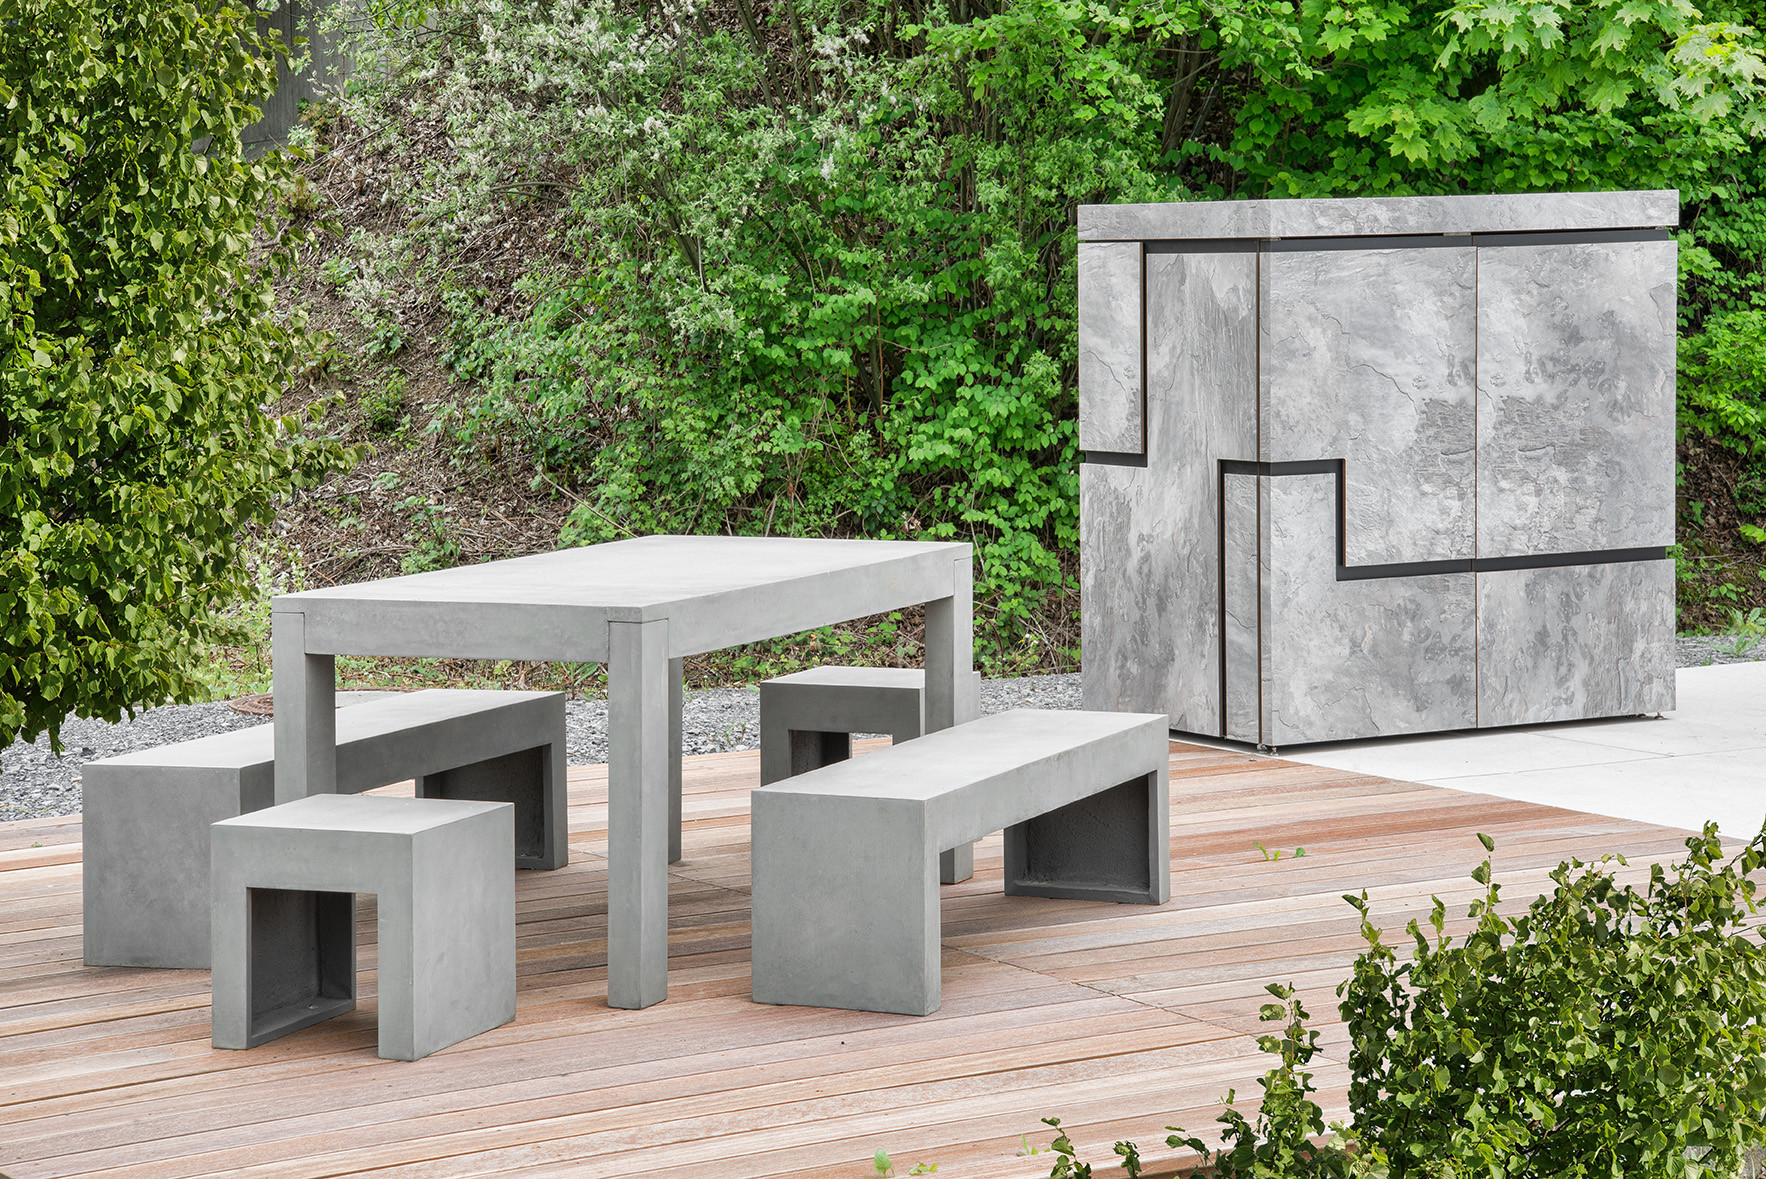 terrassenm bel schreinerei dolch reiner gmbh co kg. Black Bedroom Furniture Sets. Home Design Ideas